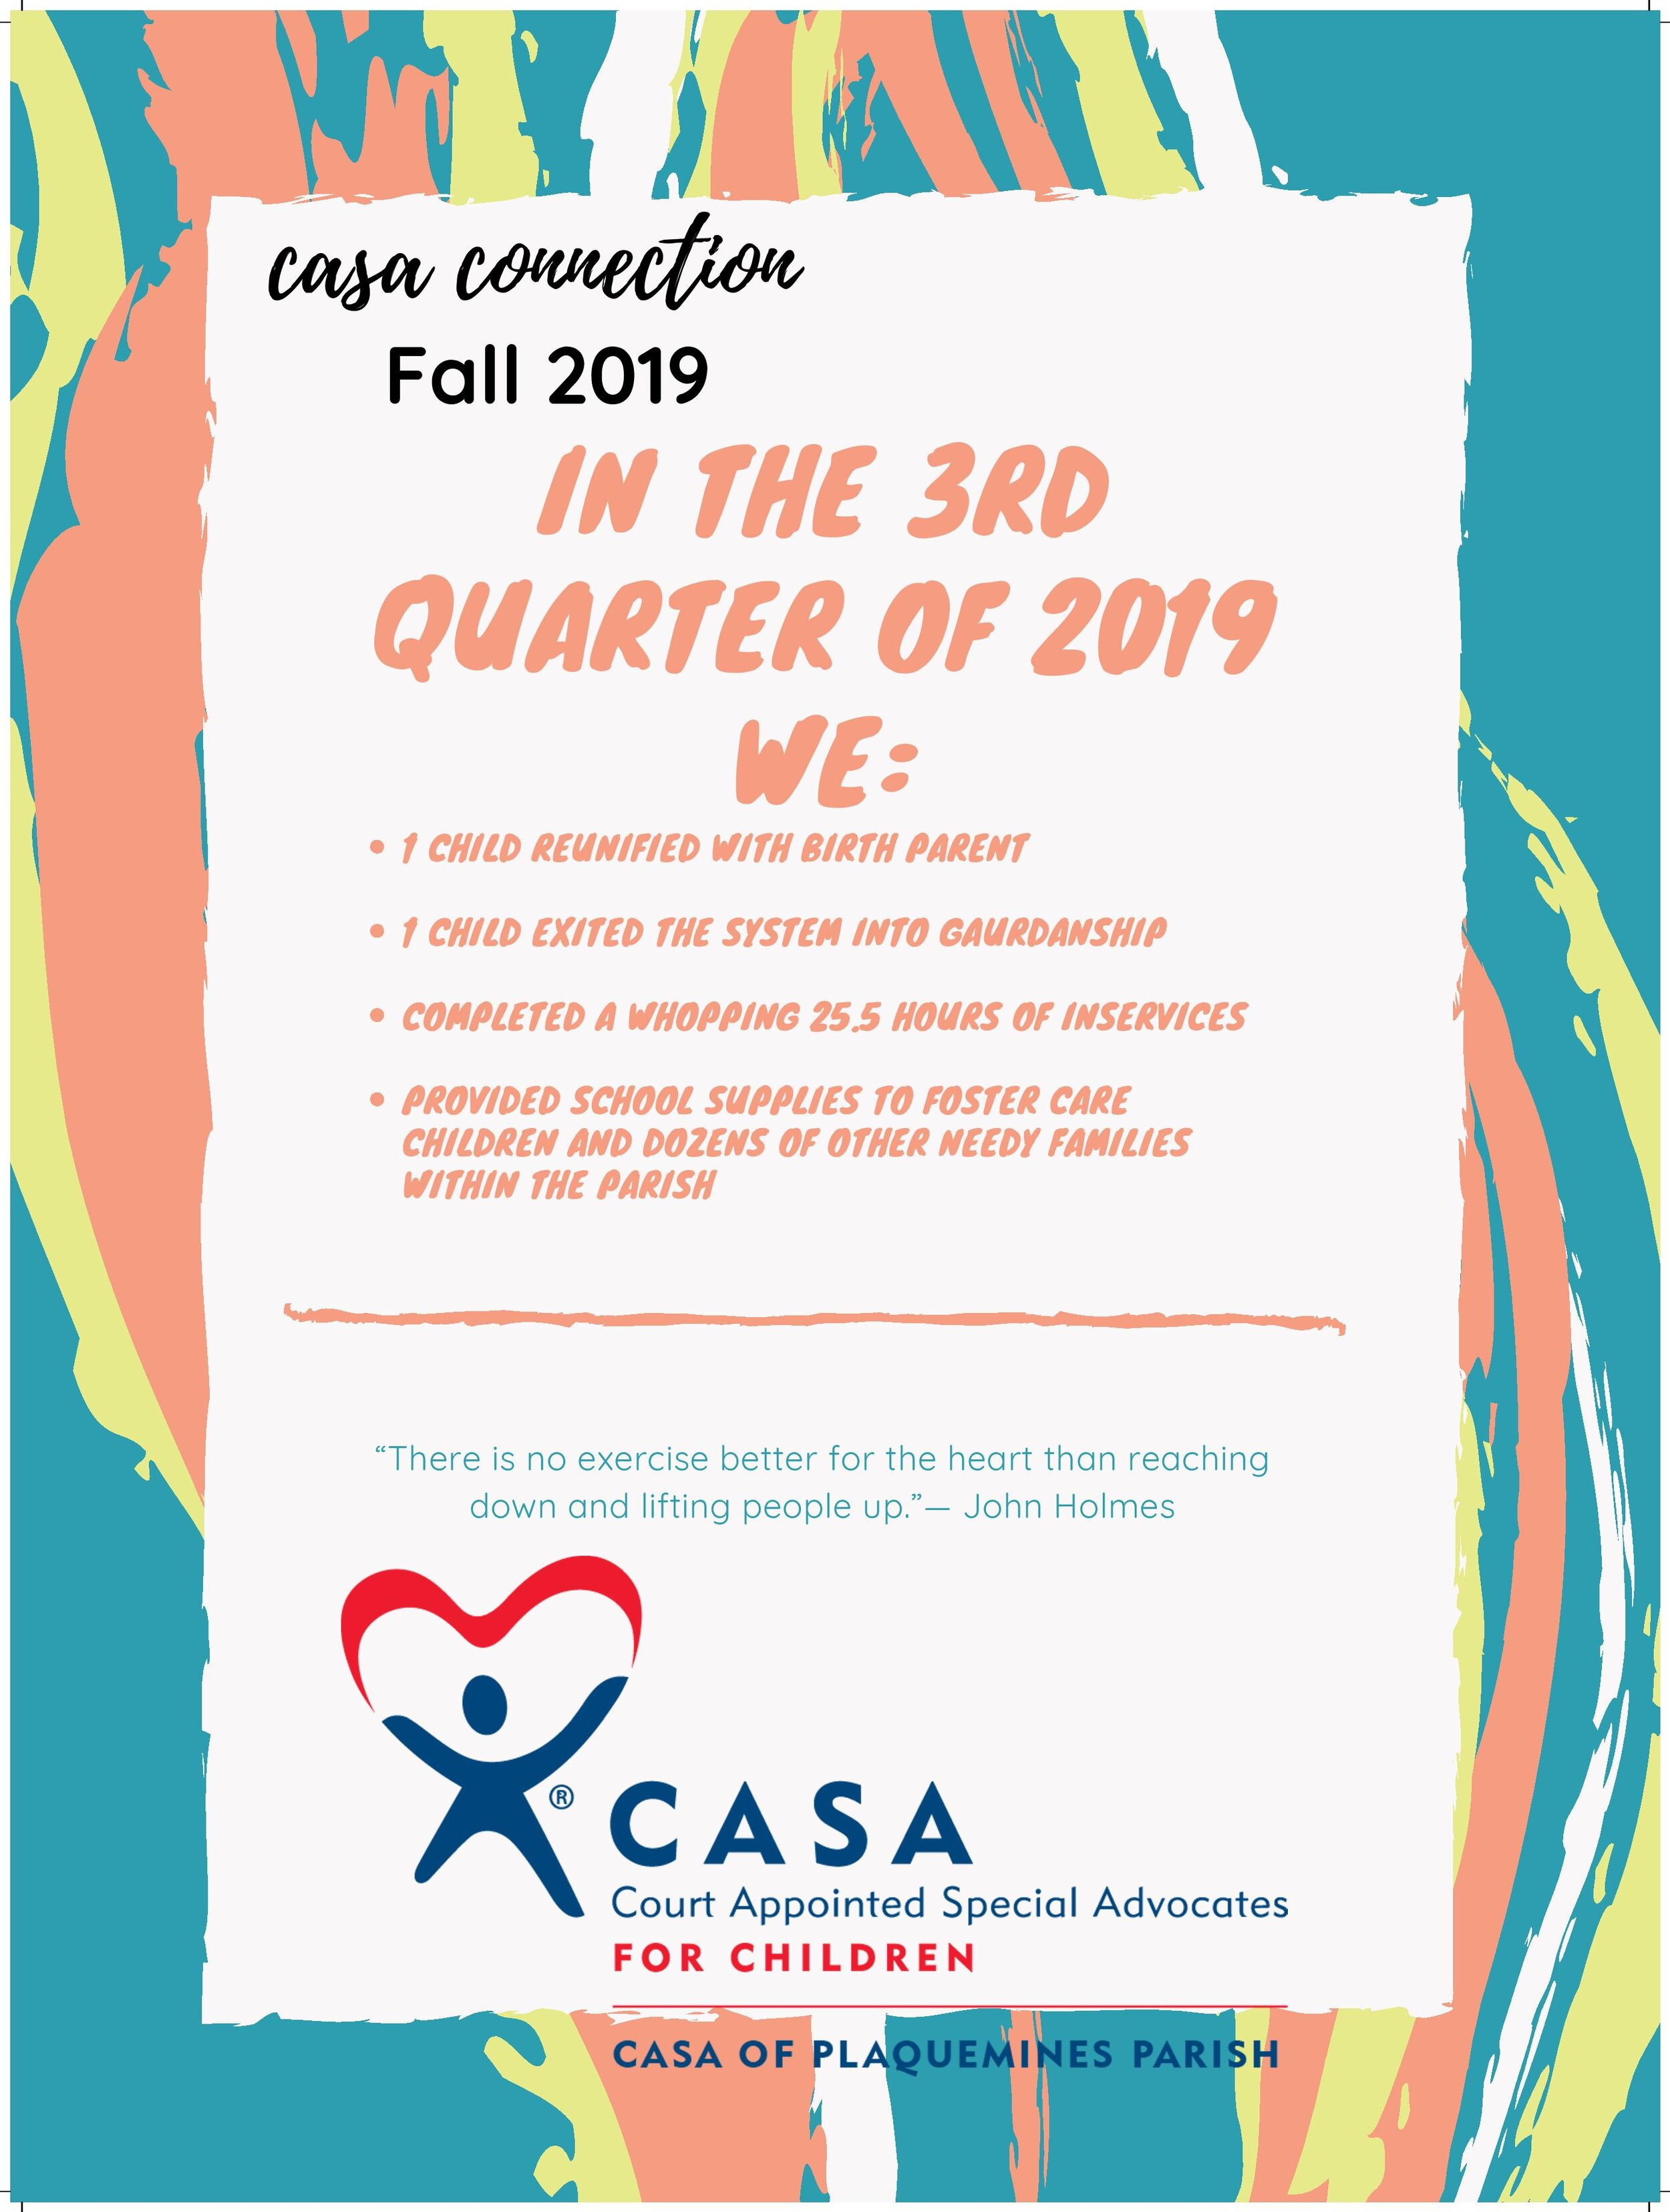 casa connection Fall 2019 (8)-page-001.jpg